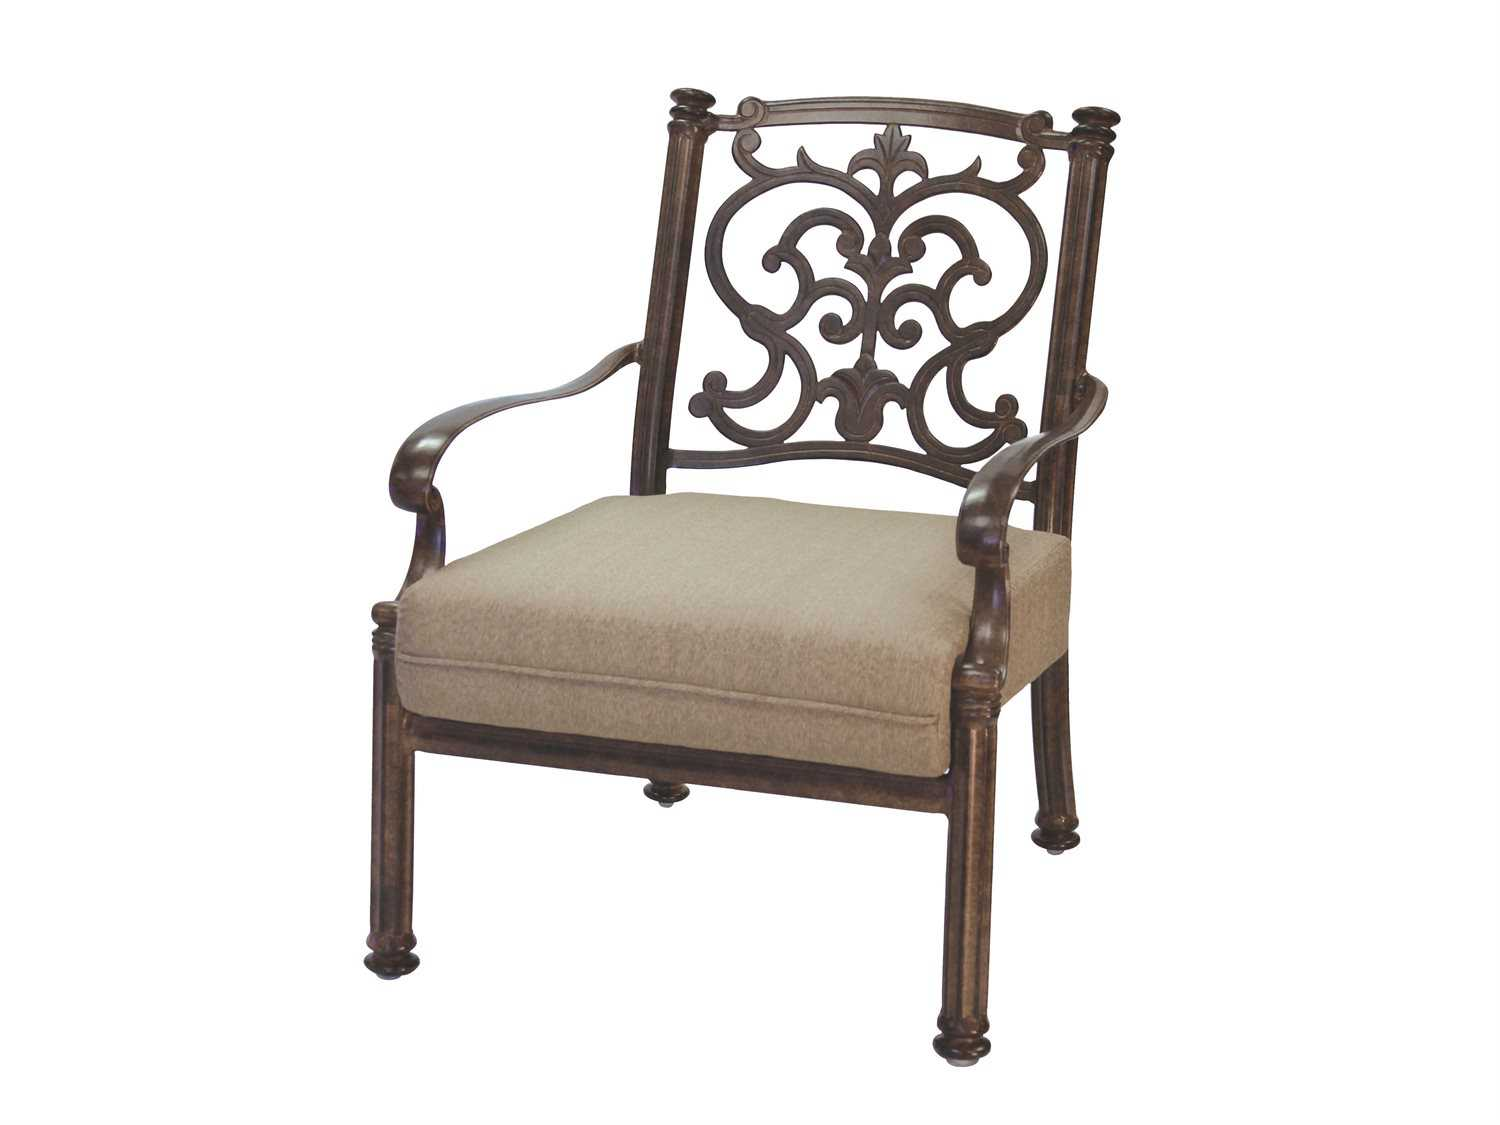 Darlee Outdoor Living Standard Santa Barbara Replacement Dining Chair Seat Cu